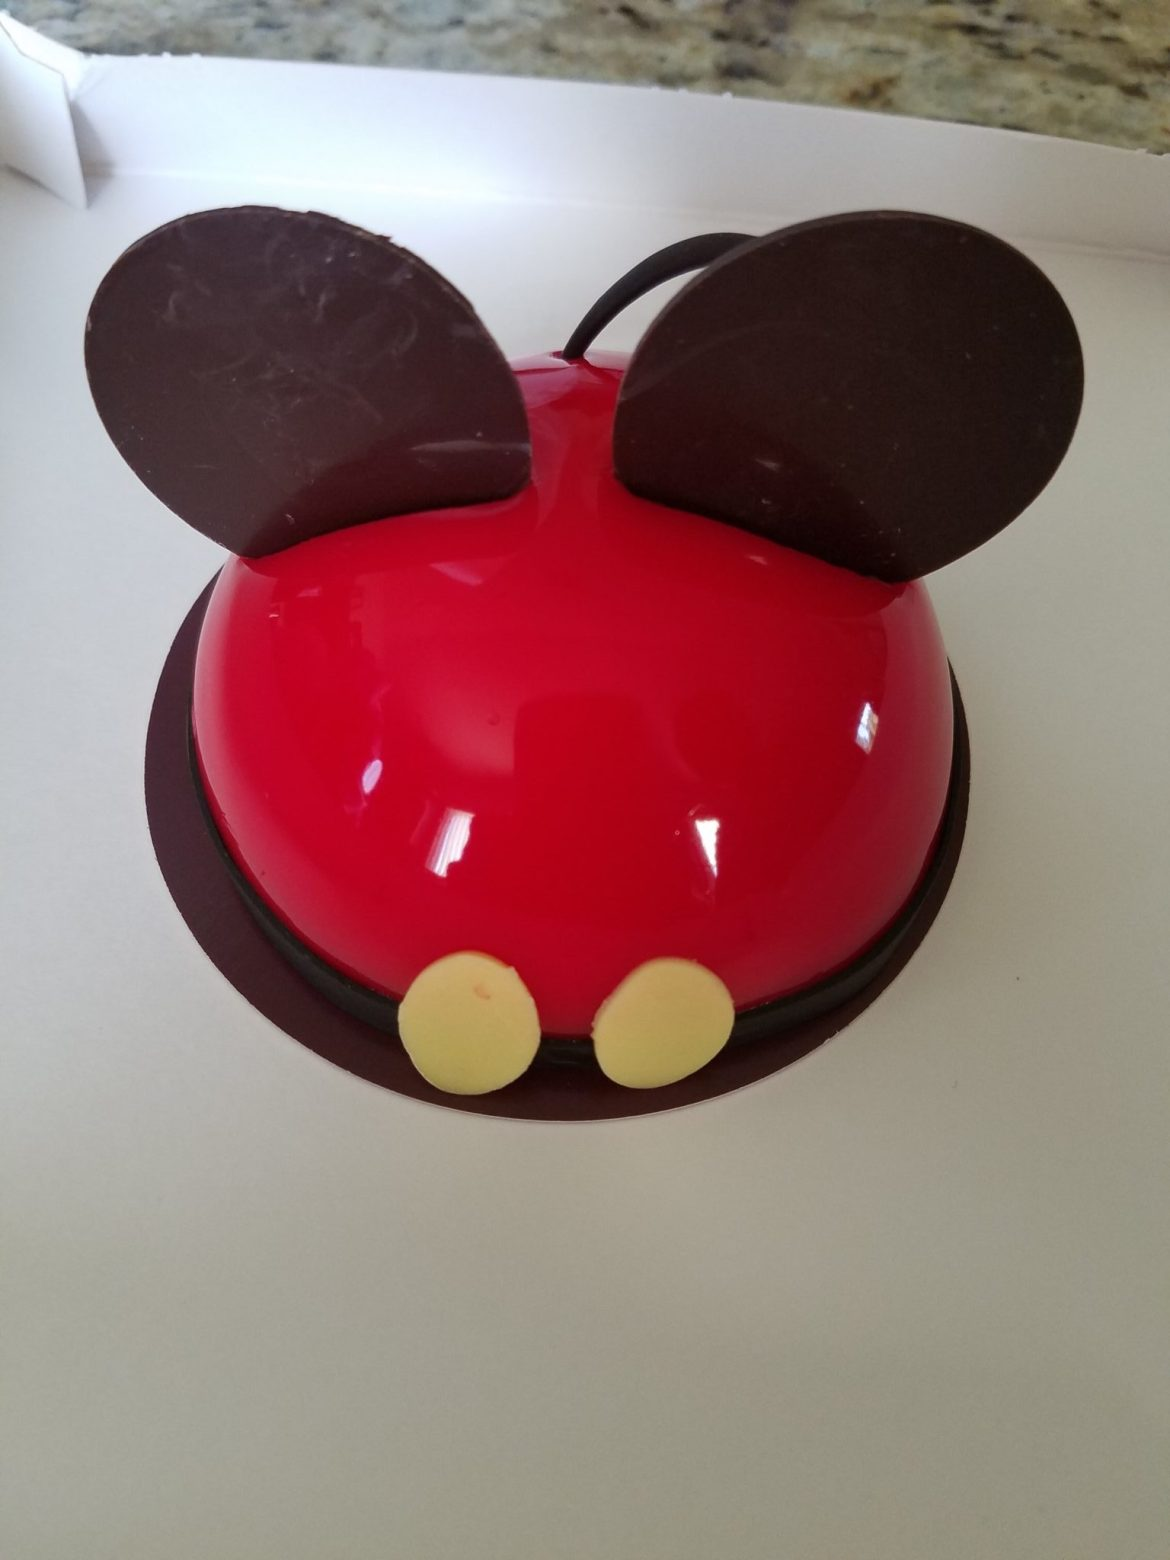 Amorette's Patisserie Autumn Gingerbread Pumpkin & Mickey Mouse Pastries Review